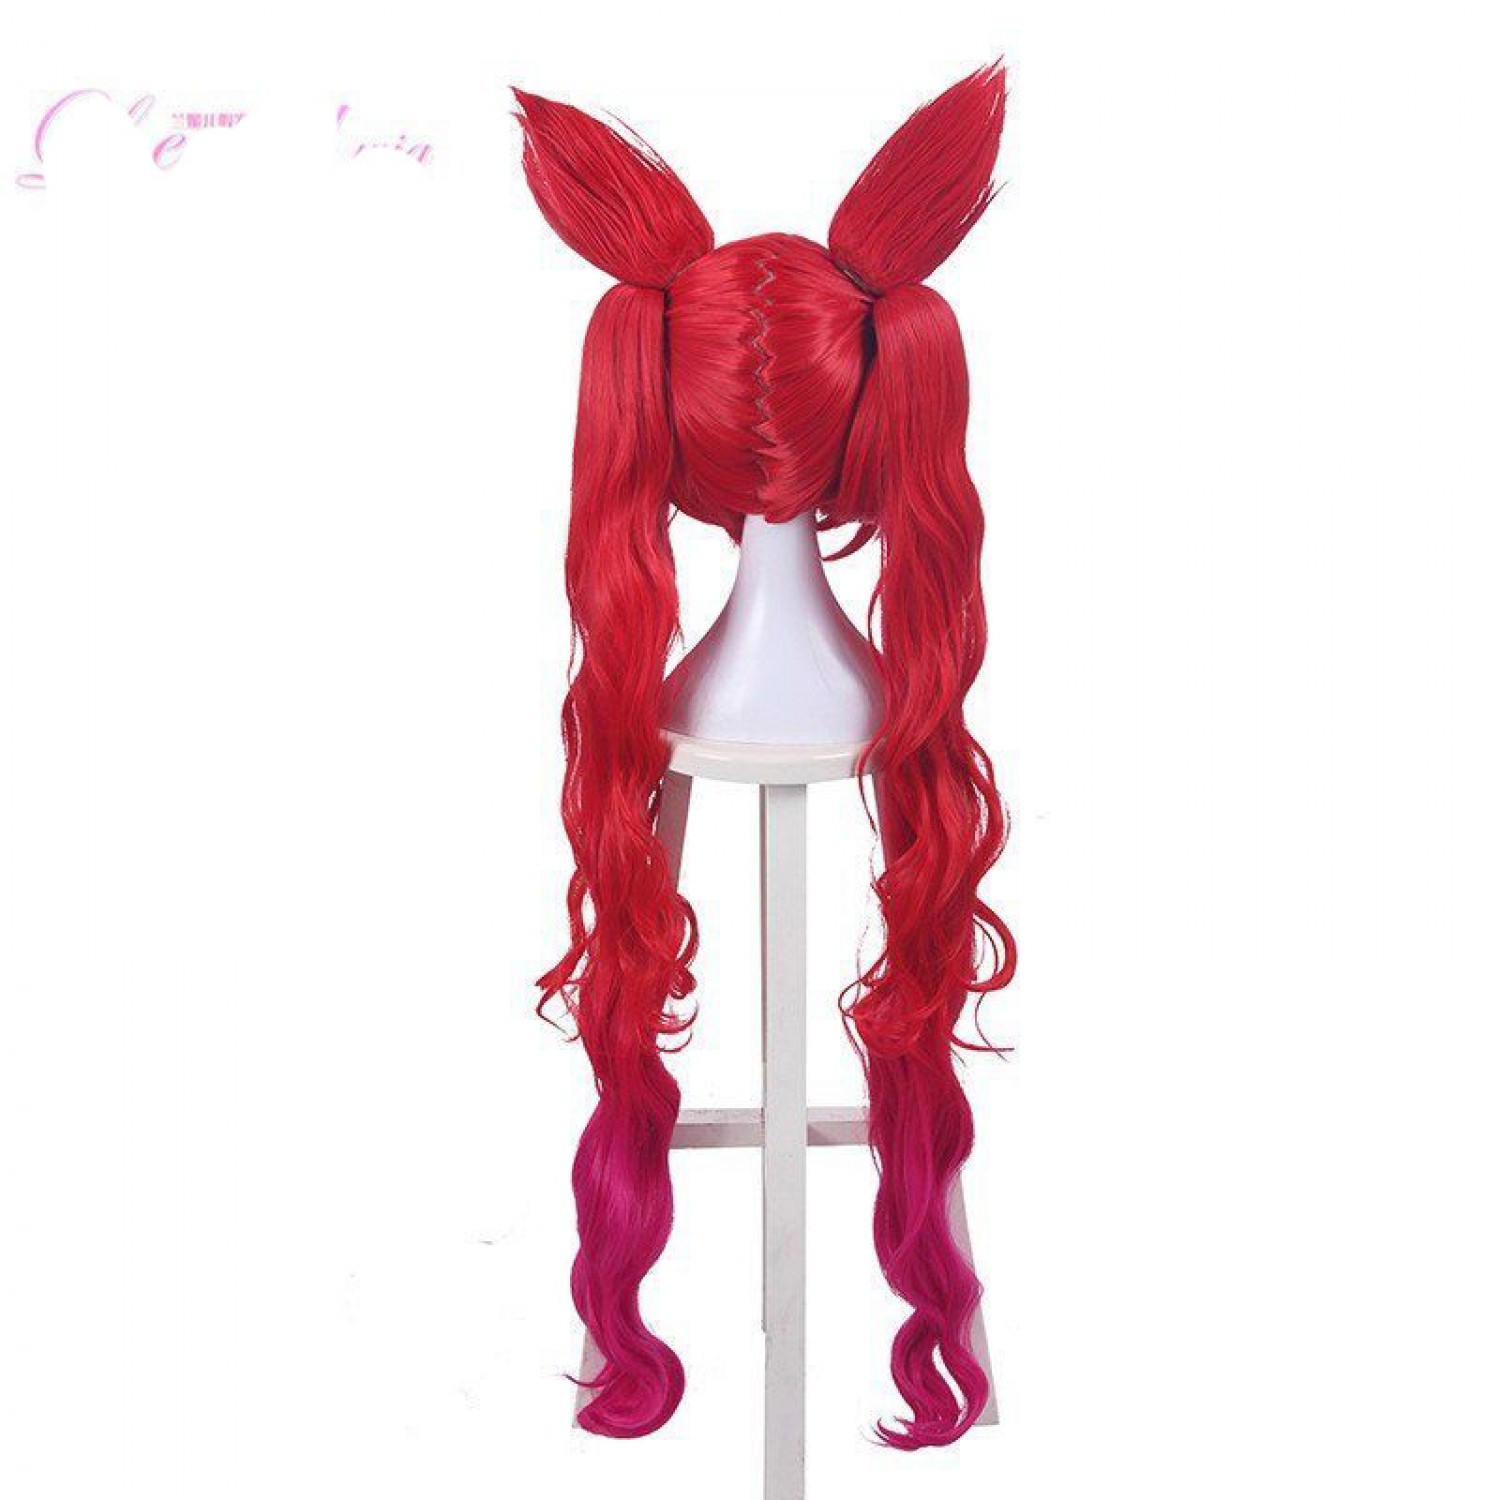 League of Legends LoL Star Guardian Jinx Long Two Ponytail Two Ears Cosplay Wig